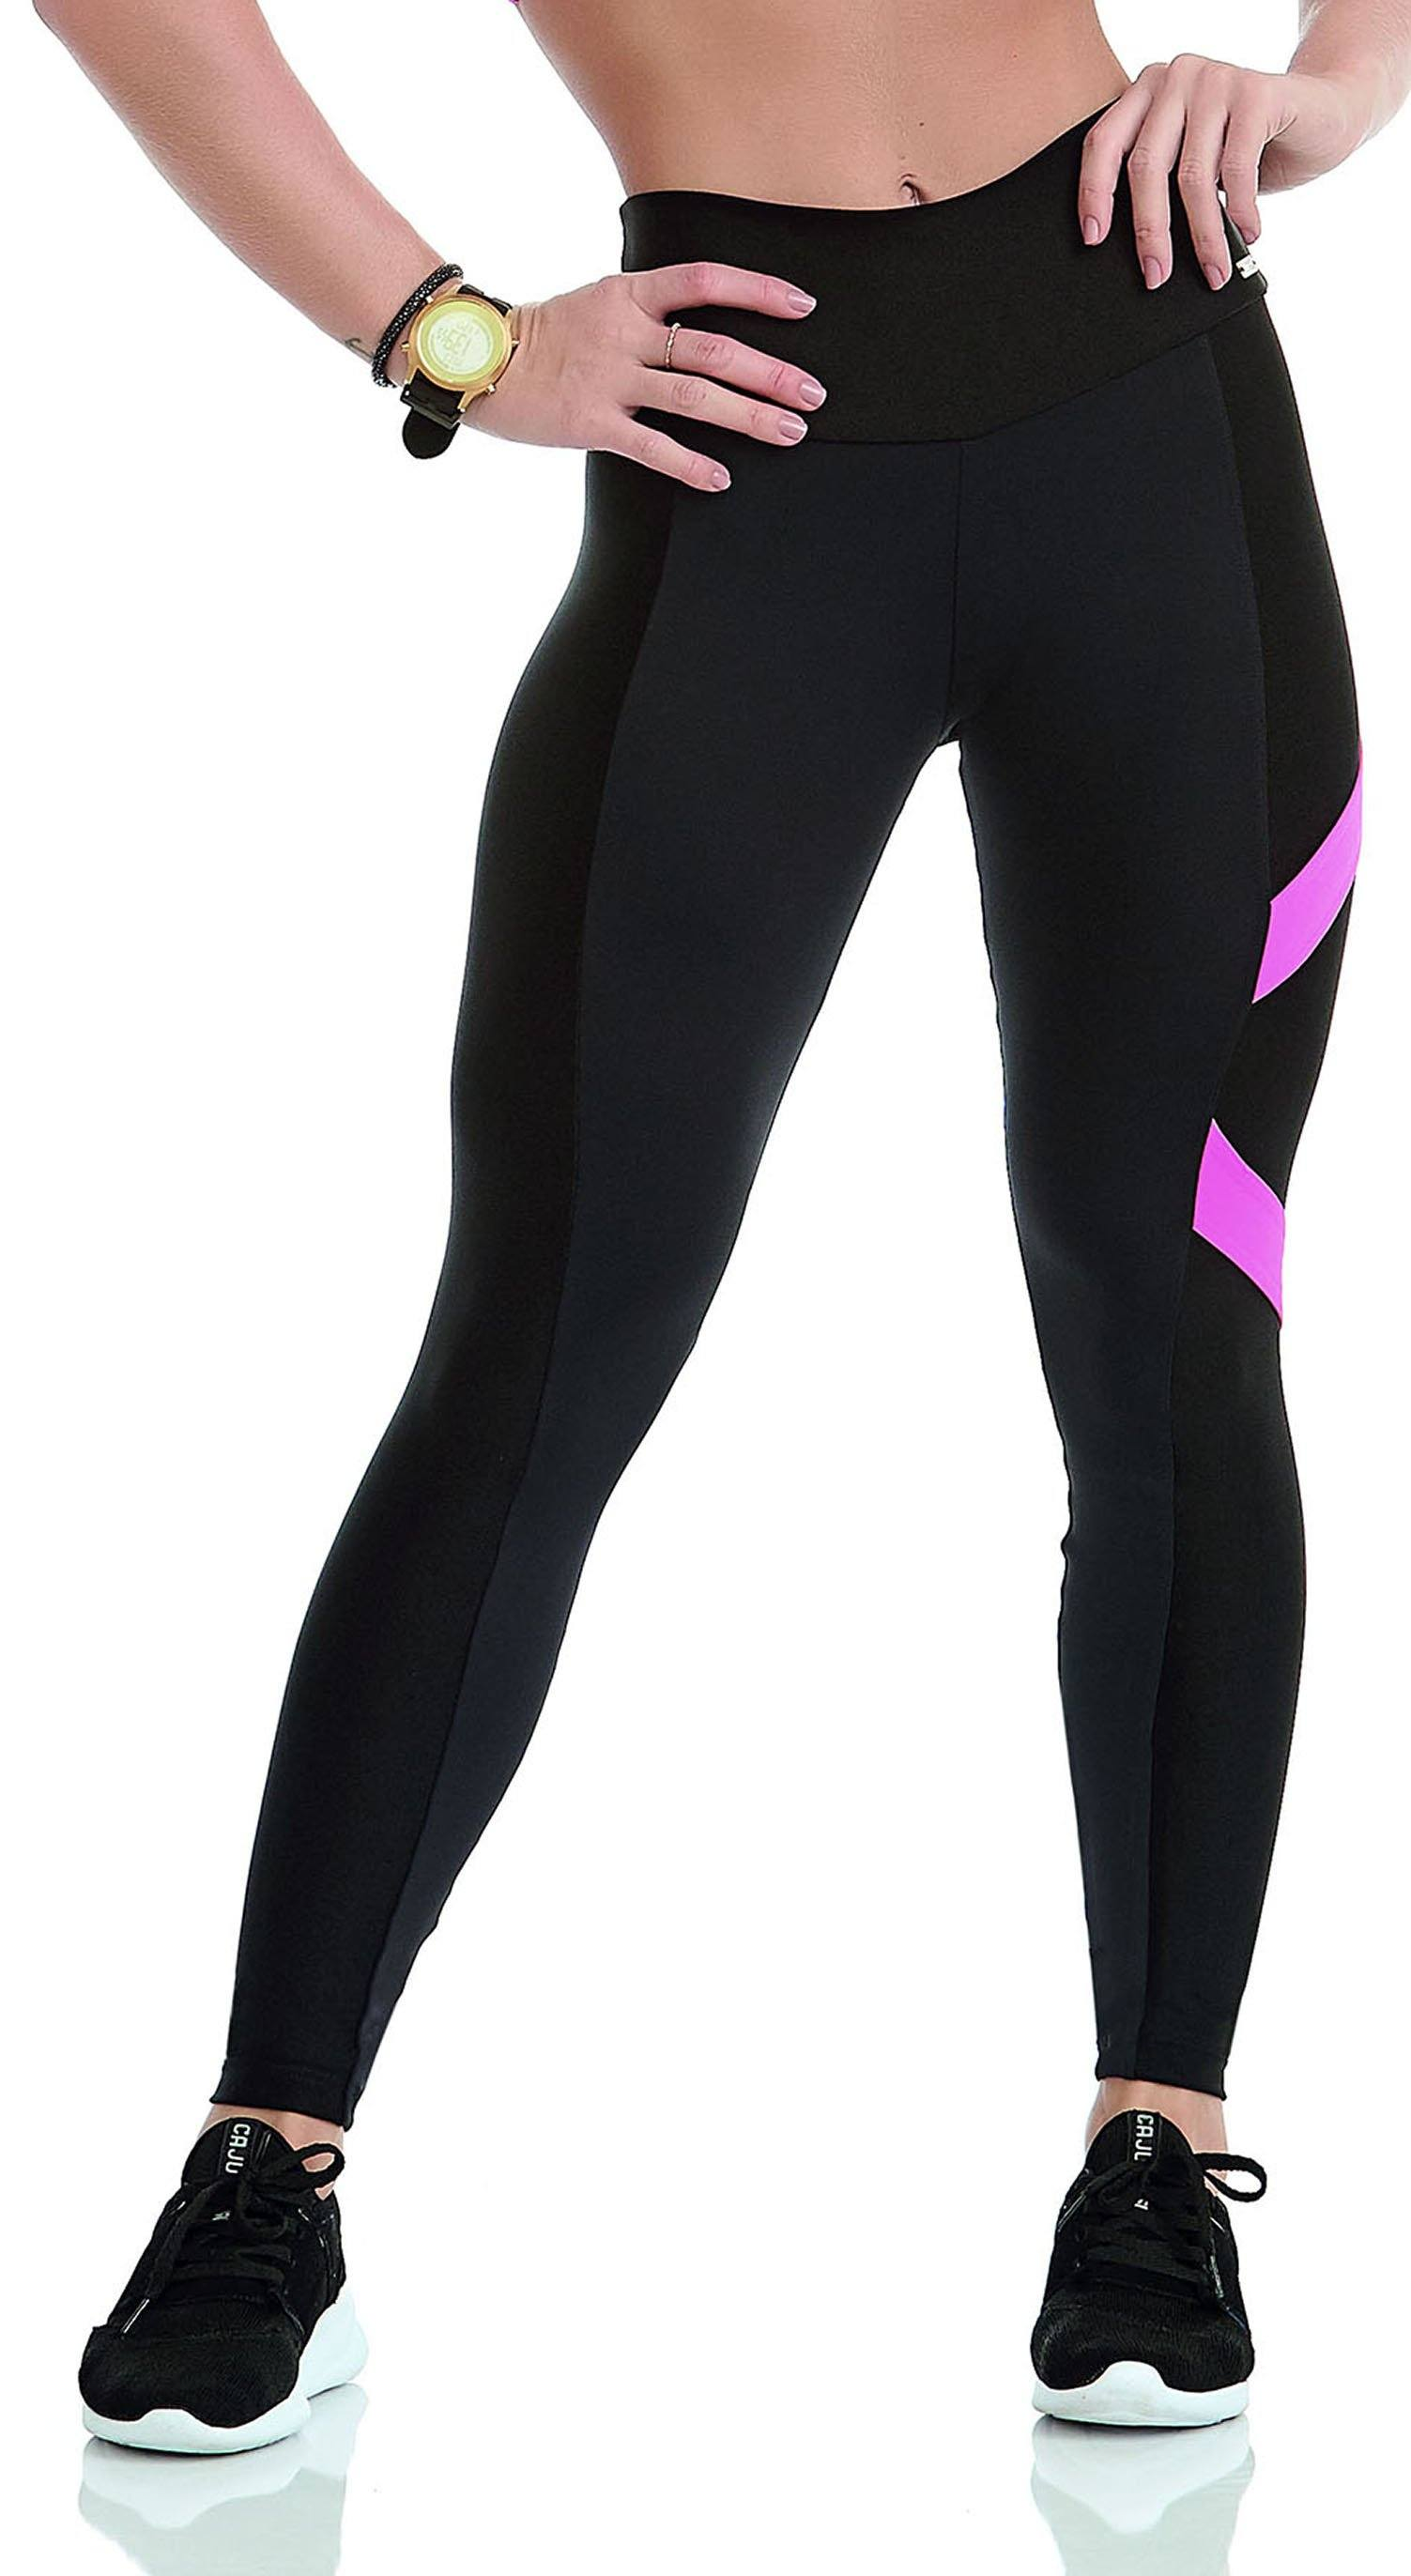 Brazilian Workout Legging - NZ Black and Neon Pink